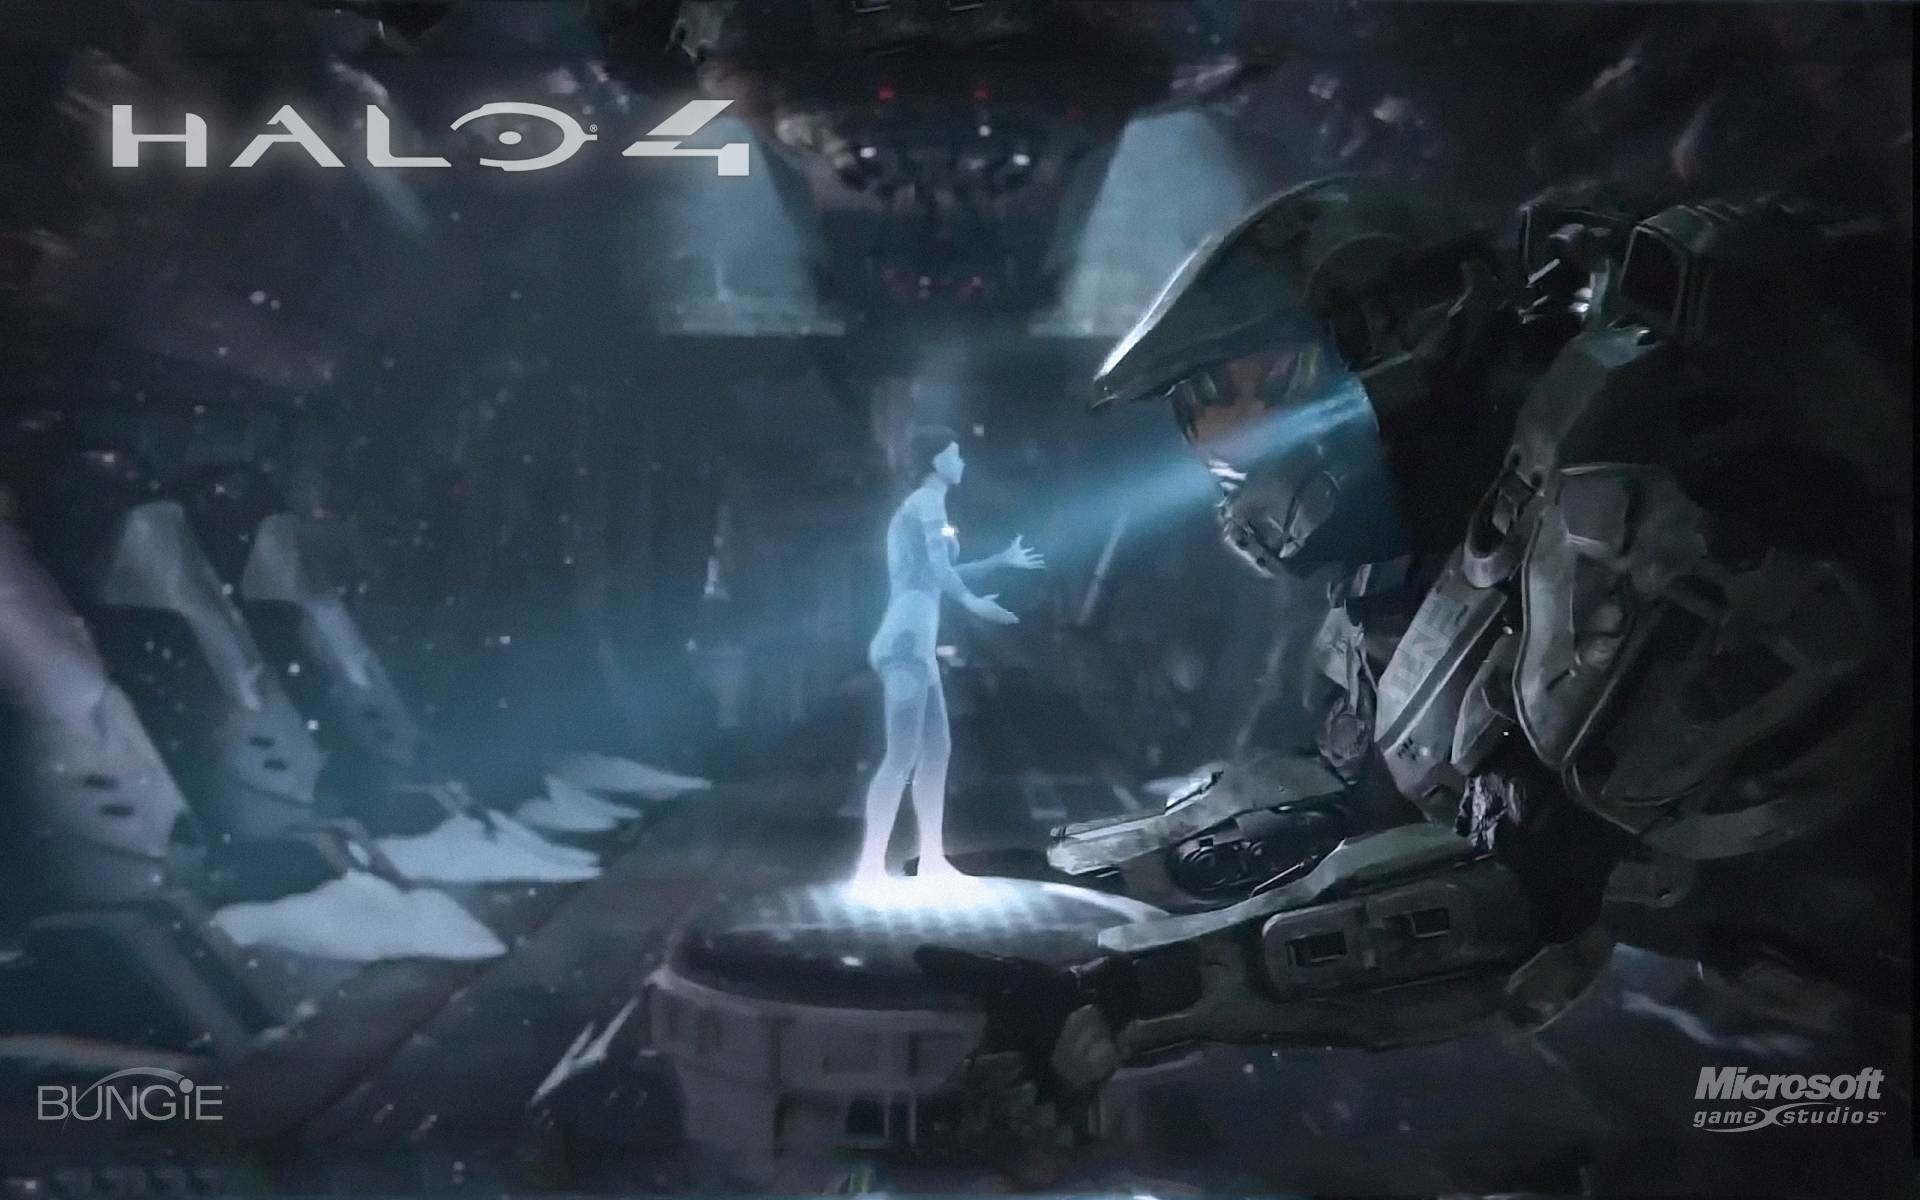 Halo 4 Wallpaper Hd Wallpapertag